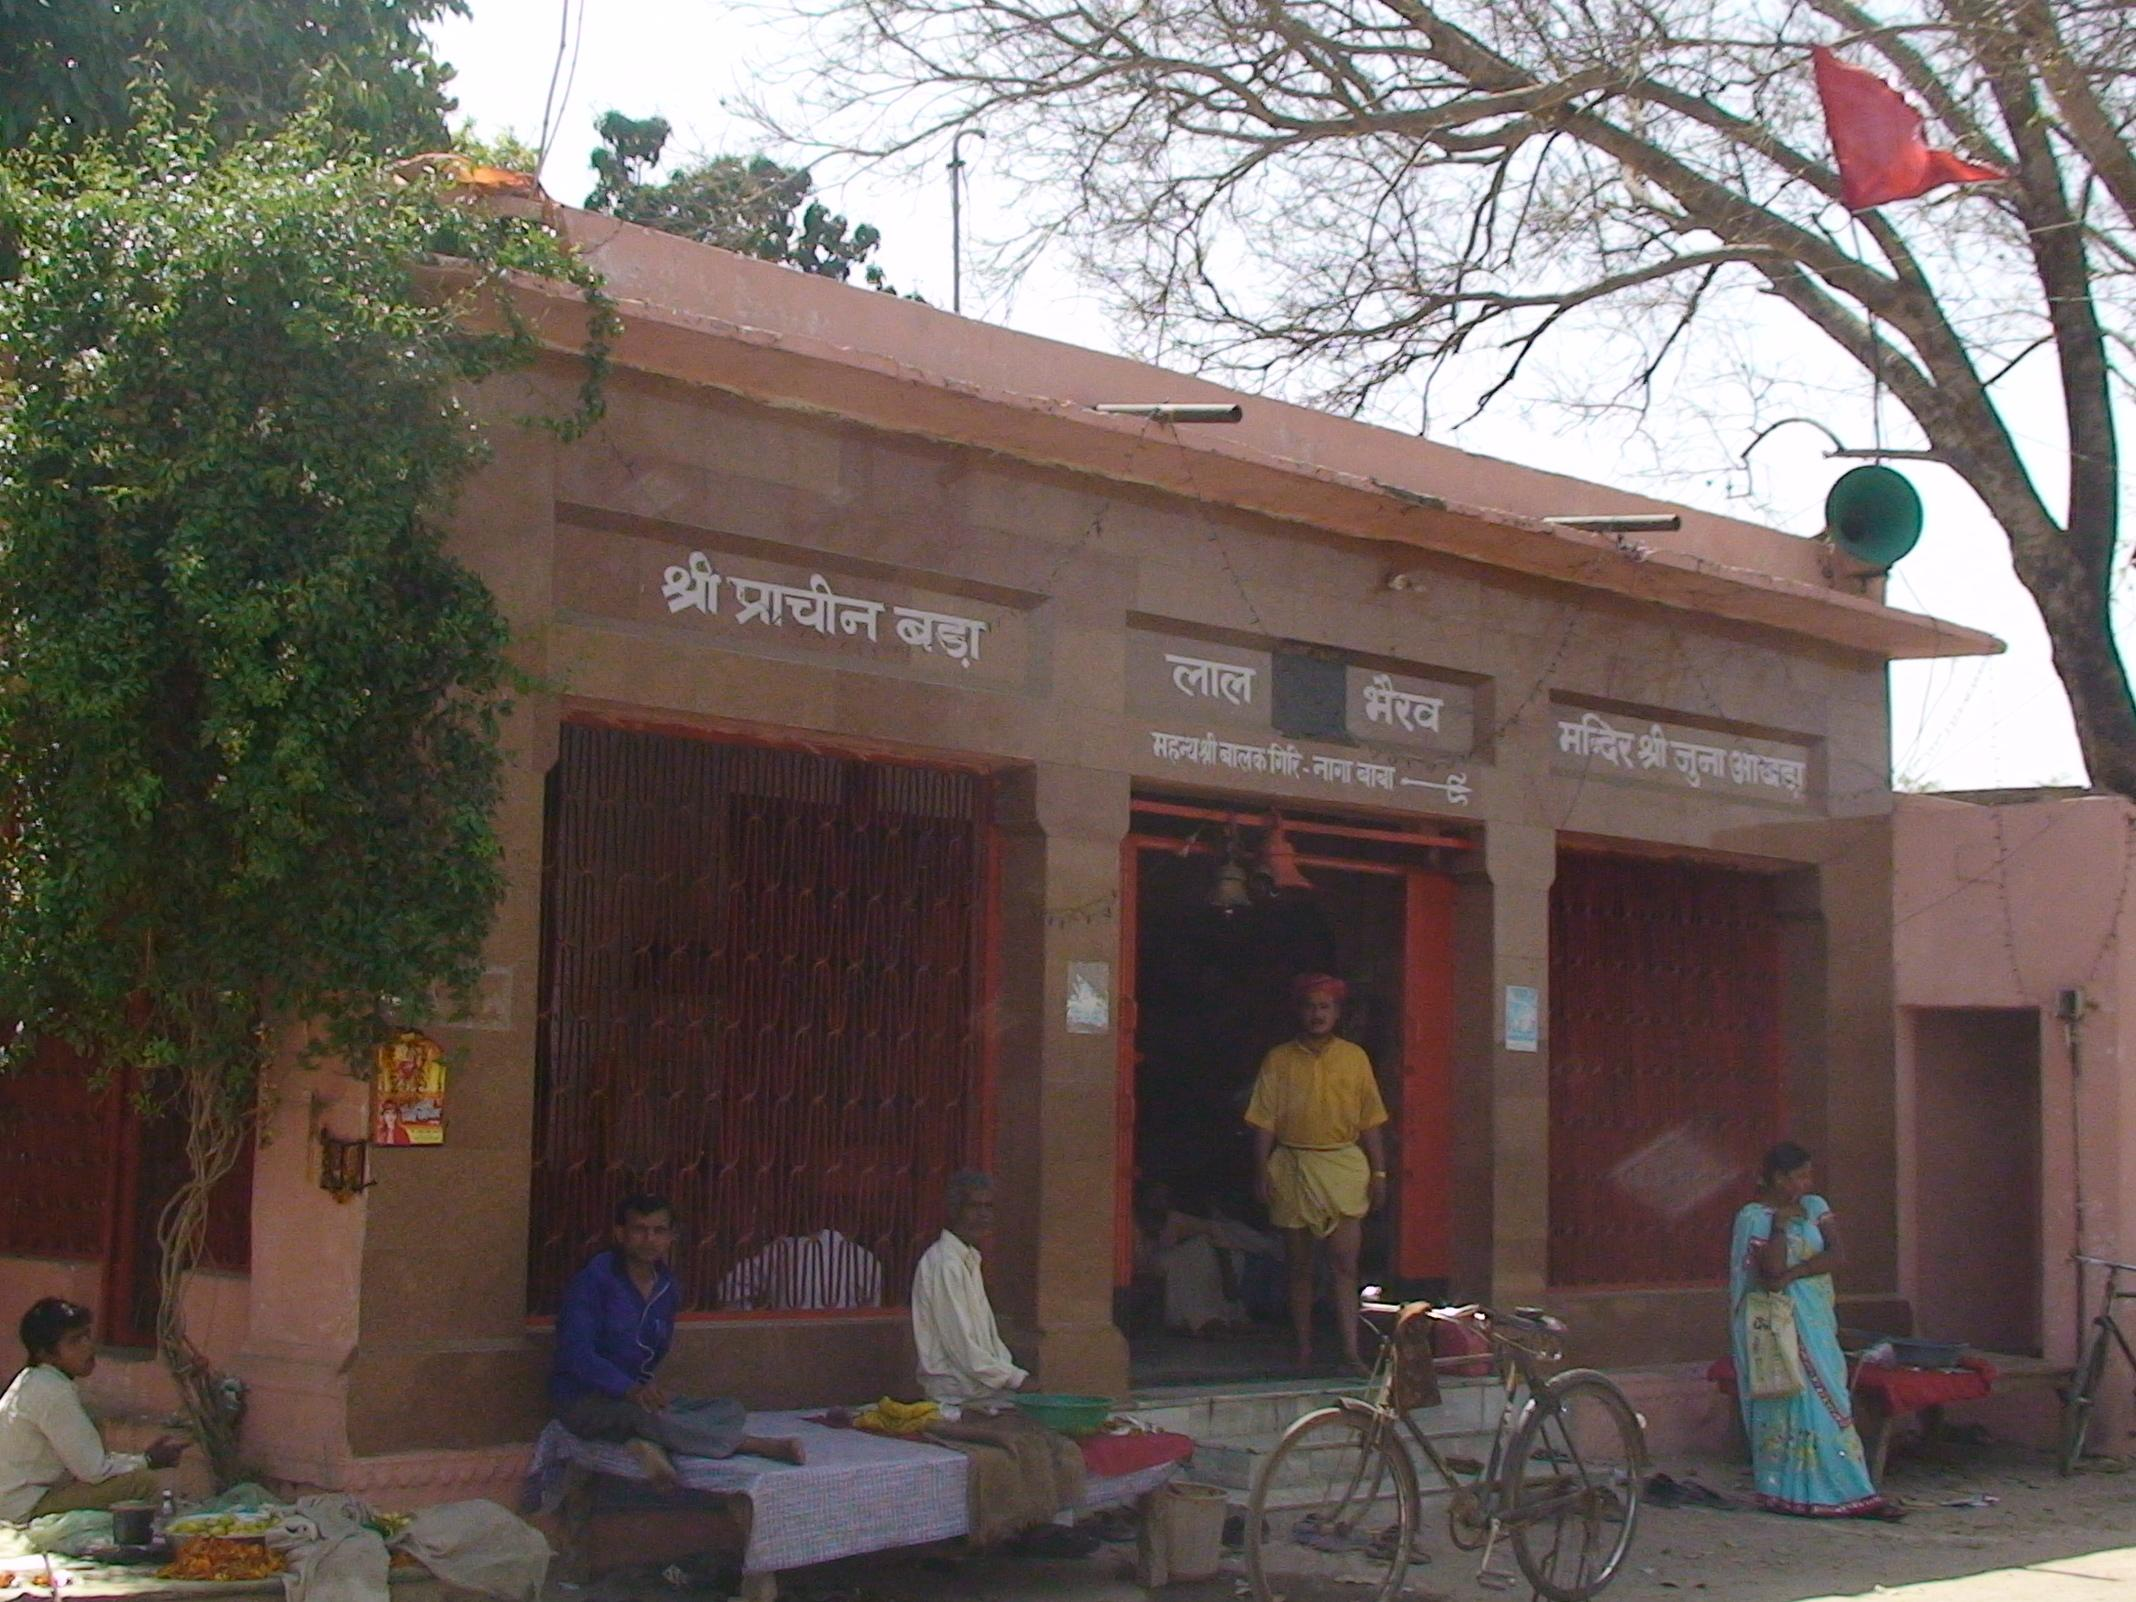 Vindhyachal Dham : Lal Bhairav Temple